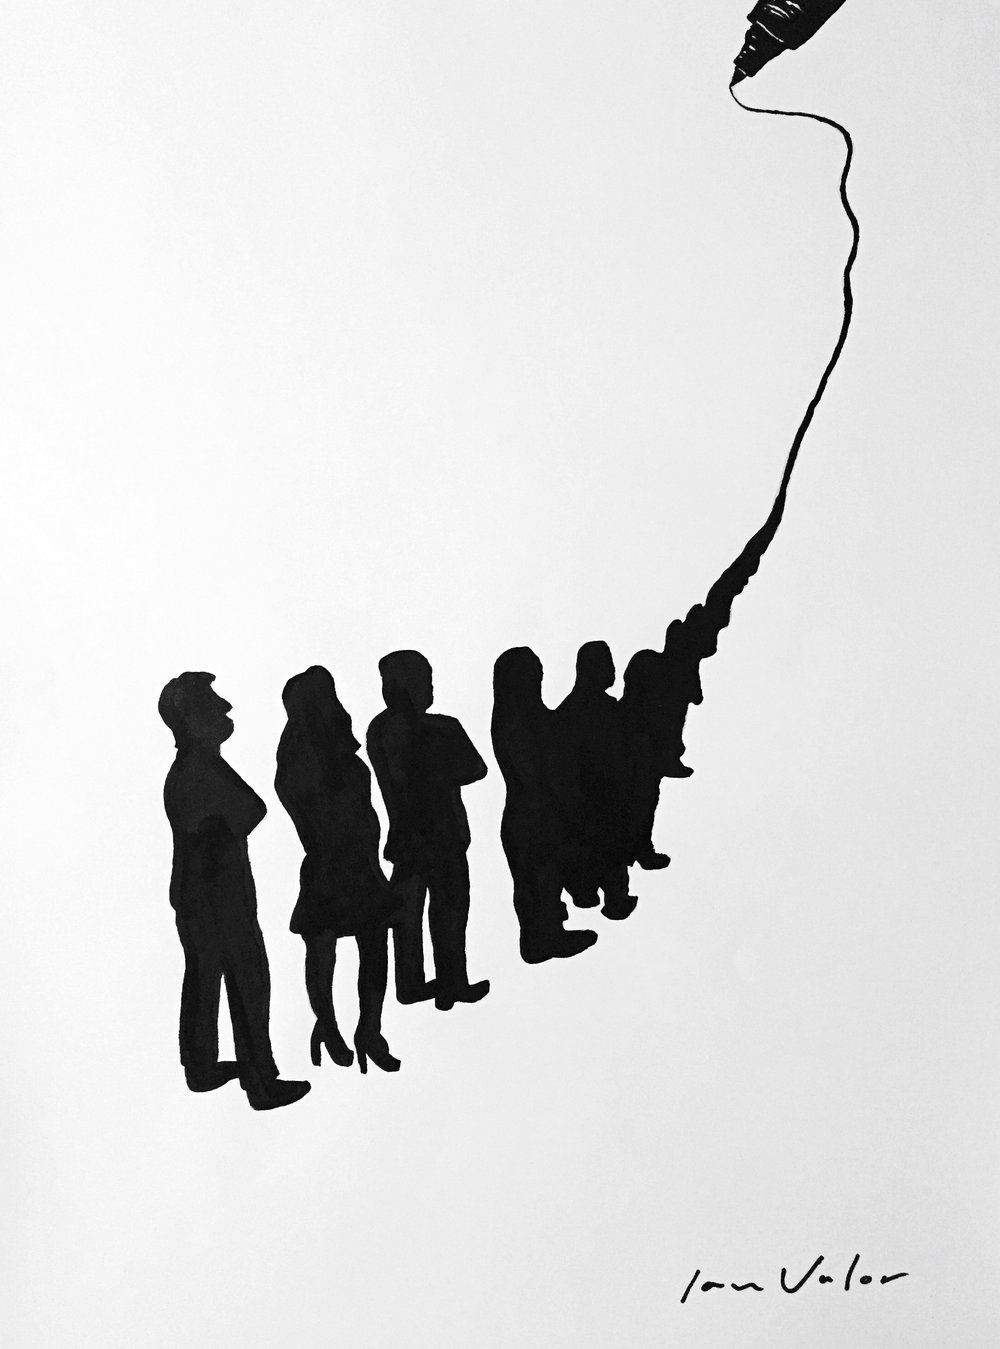 Waiting With A Single Line , 2016